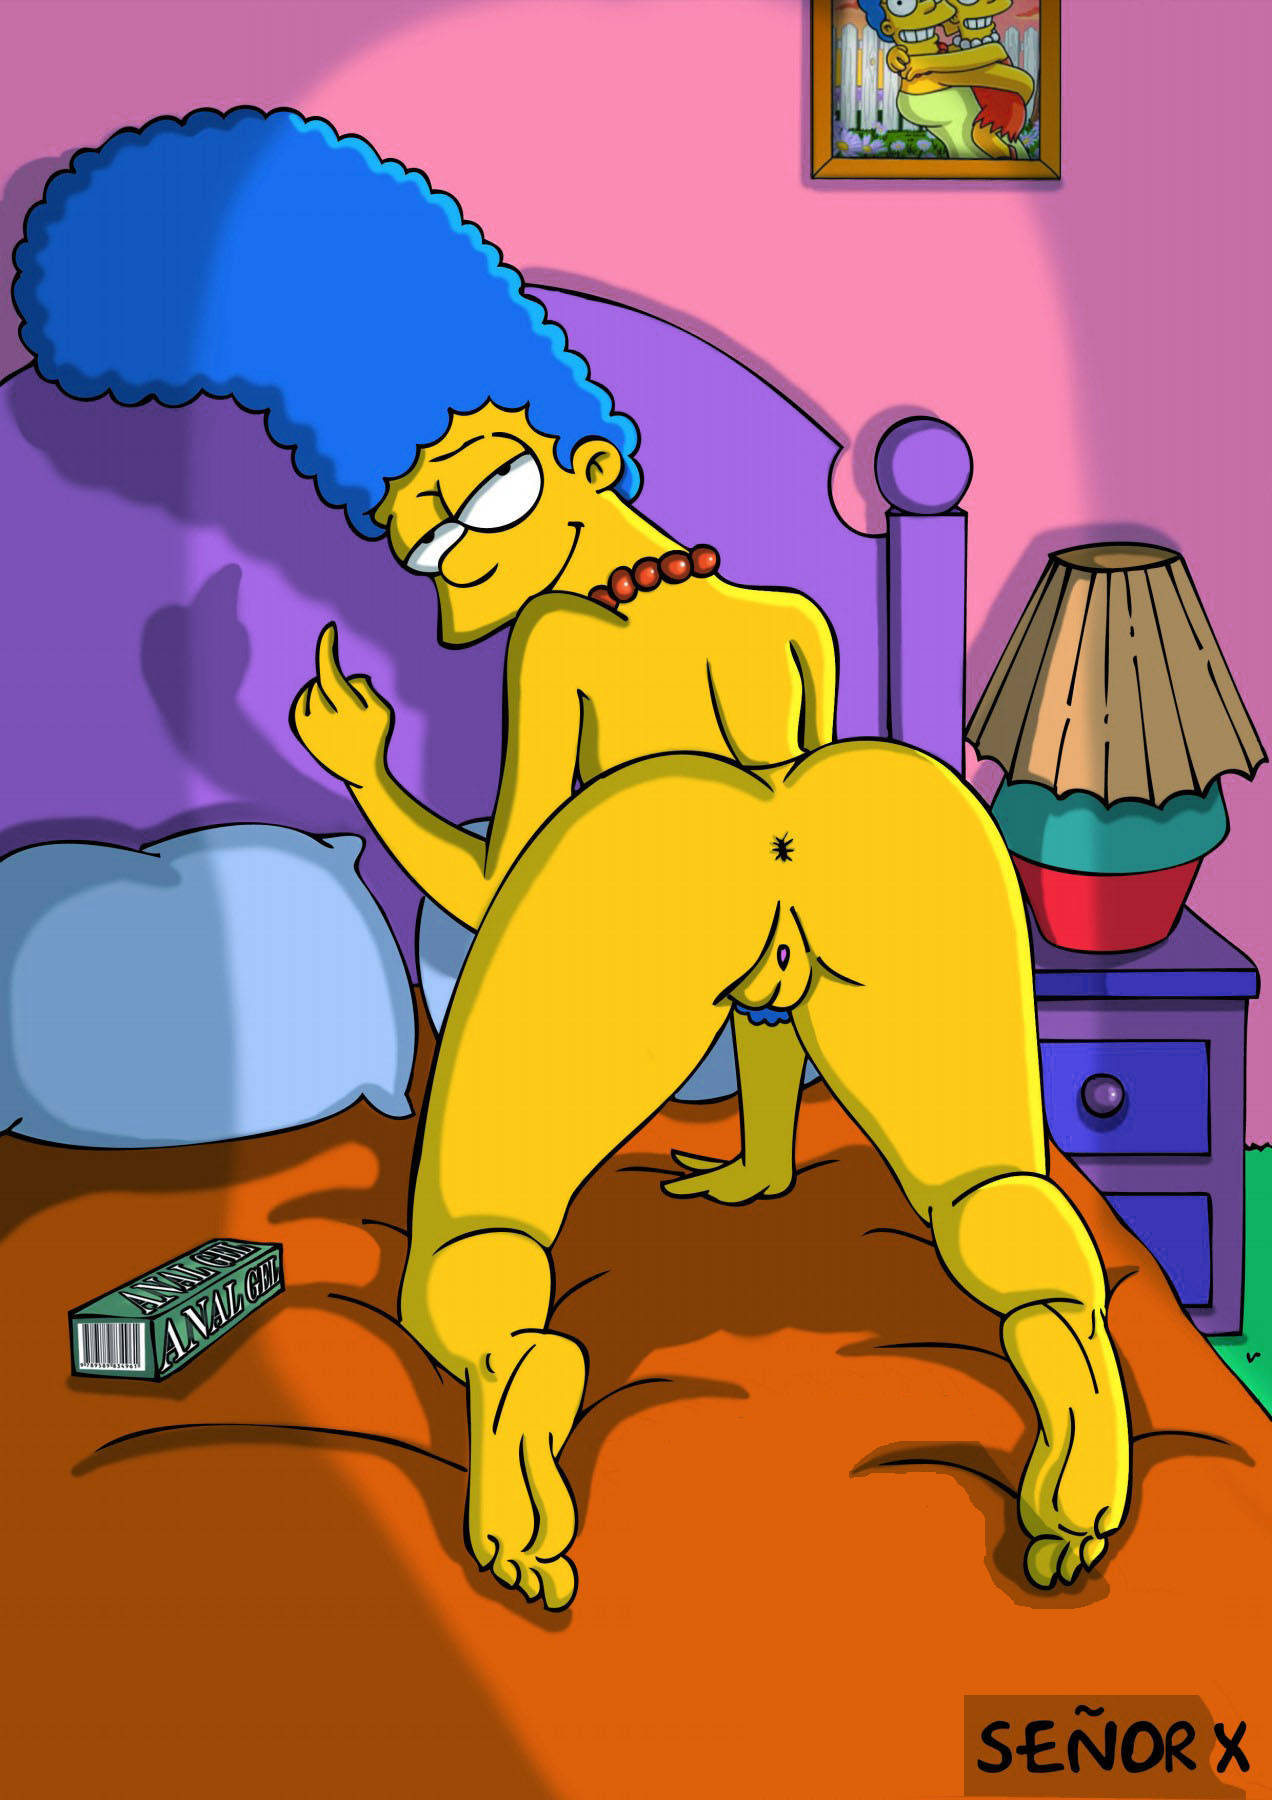 Worlds sexiest nakedcartoon pics nsfw images